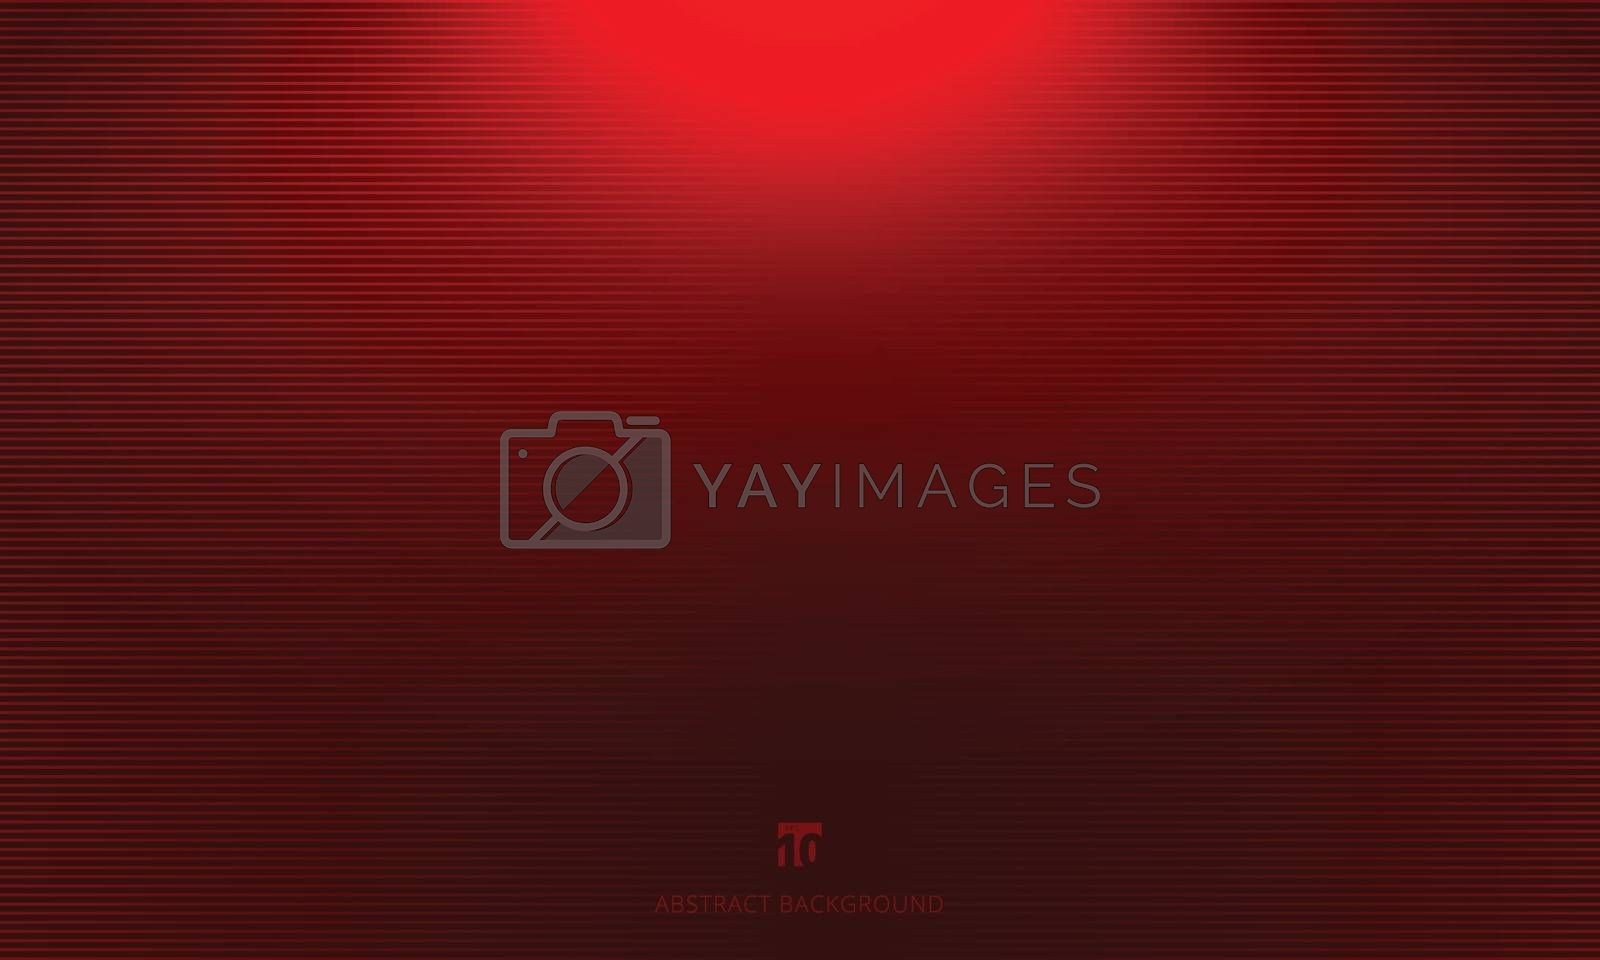 Studio room red background with lighting well use as Business backdrop, Template mock up for display of product, Vector illustration